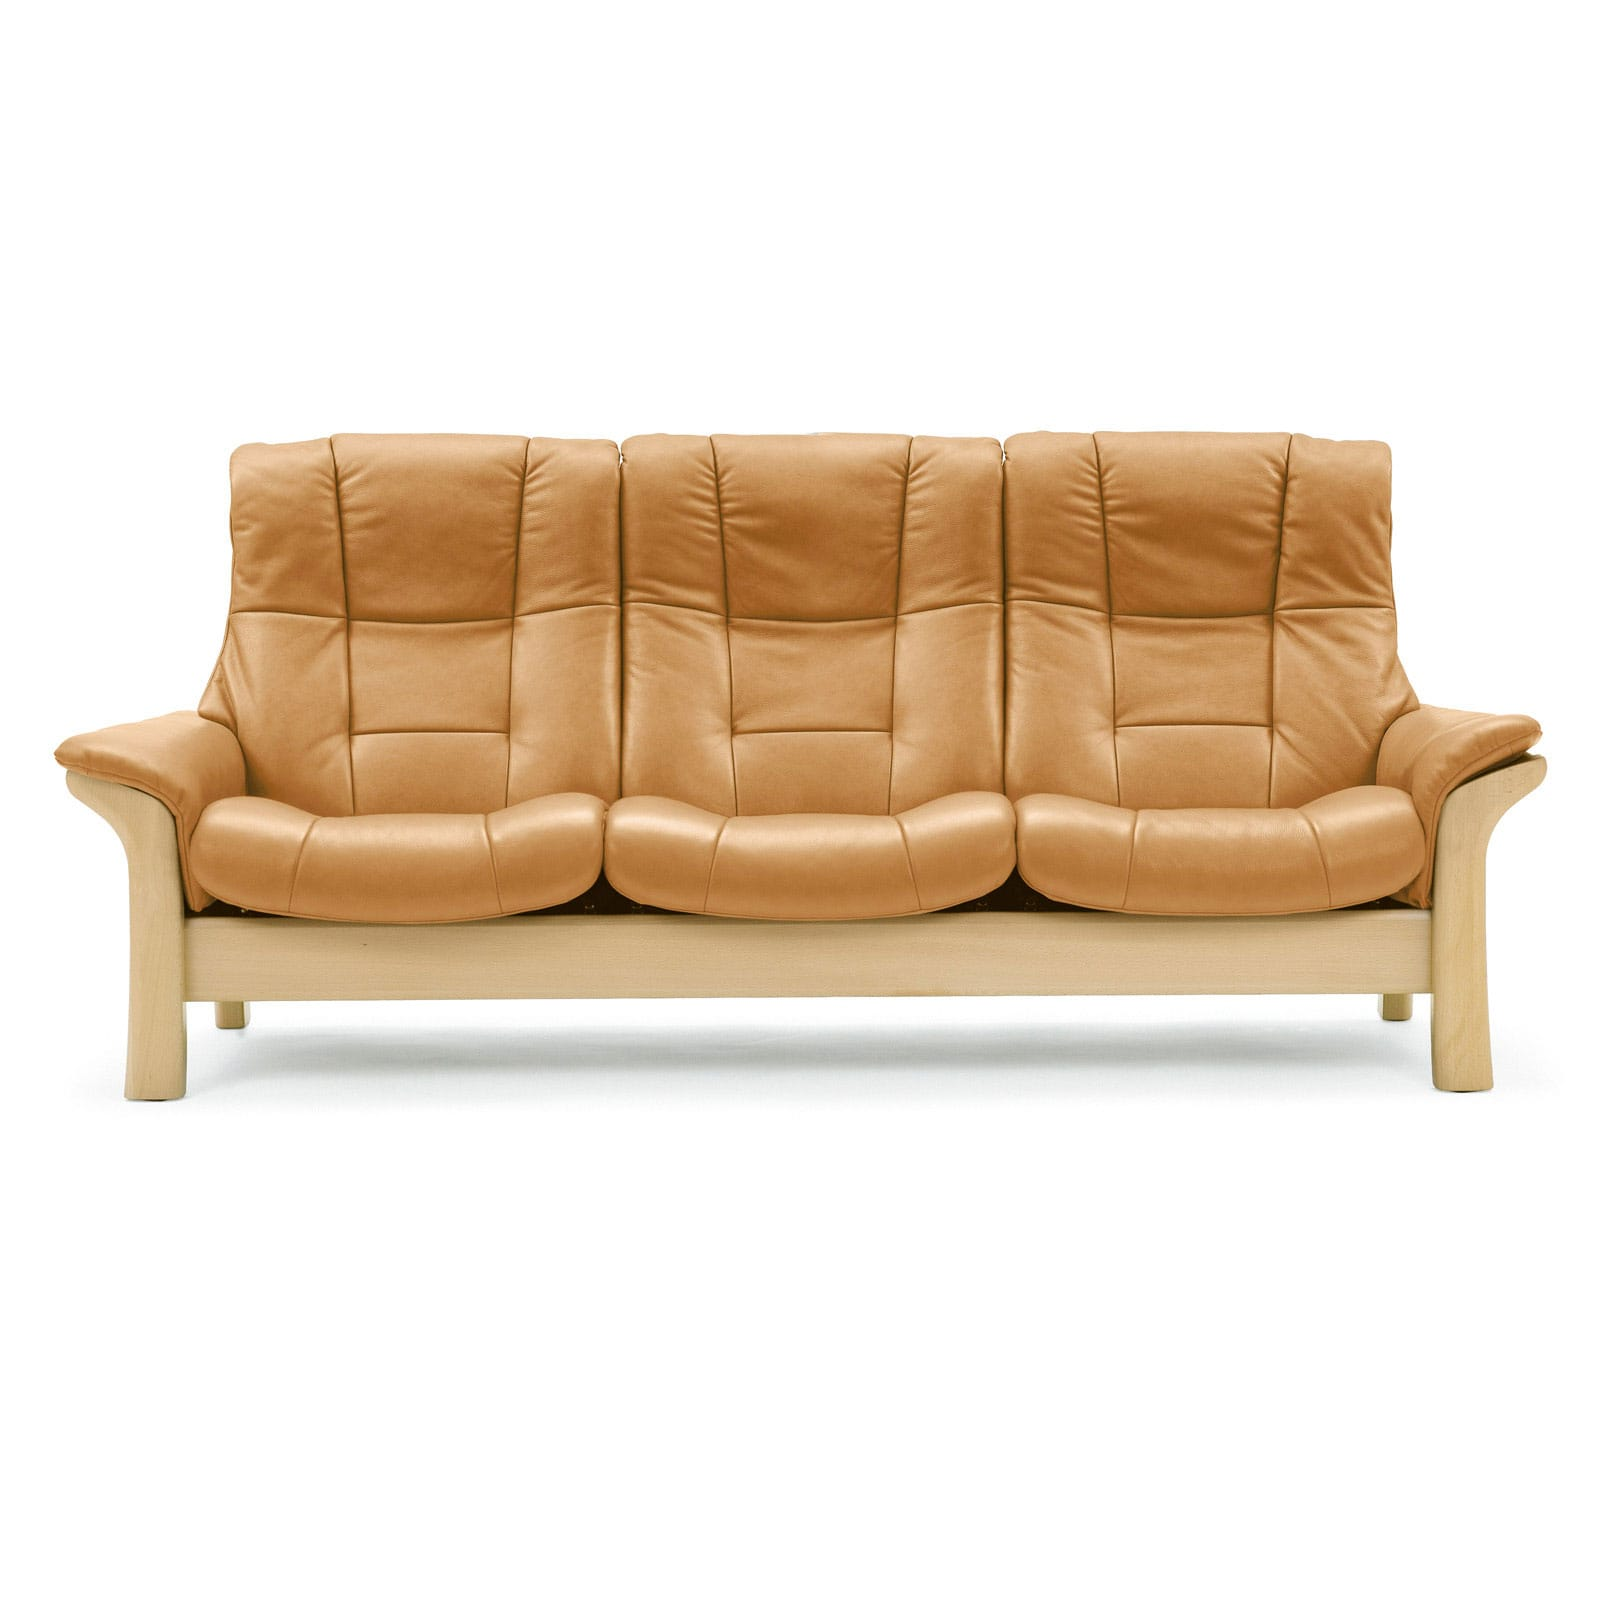 Full Size of Stressless Oslo Sofa Review Wave Couches Sale Ebay Leather Canada Cost Ekornes Furniture Used Couch Stella Kombination List 3 Sitzer Buckingham L Hoch Tan Natur Sofa Stressless Sofa